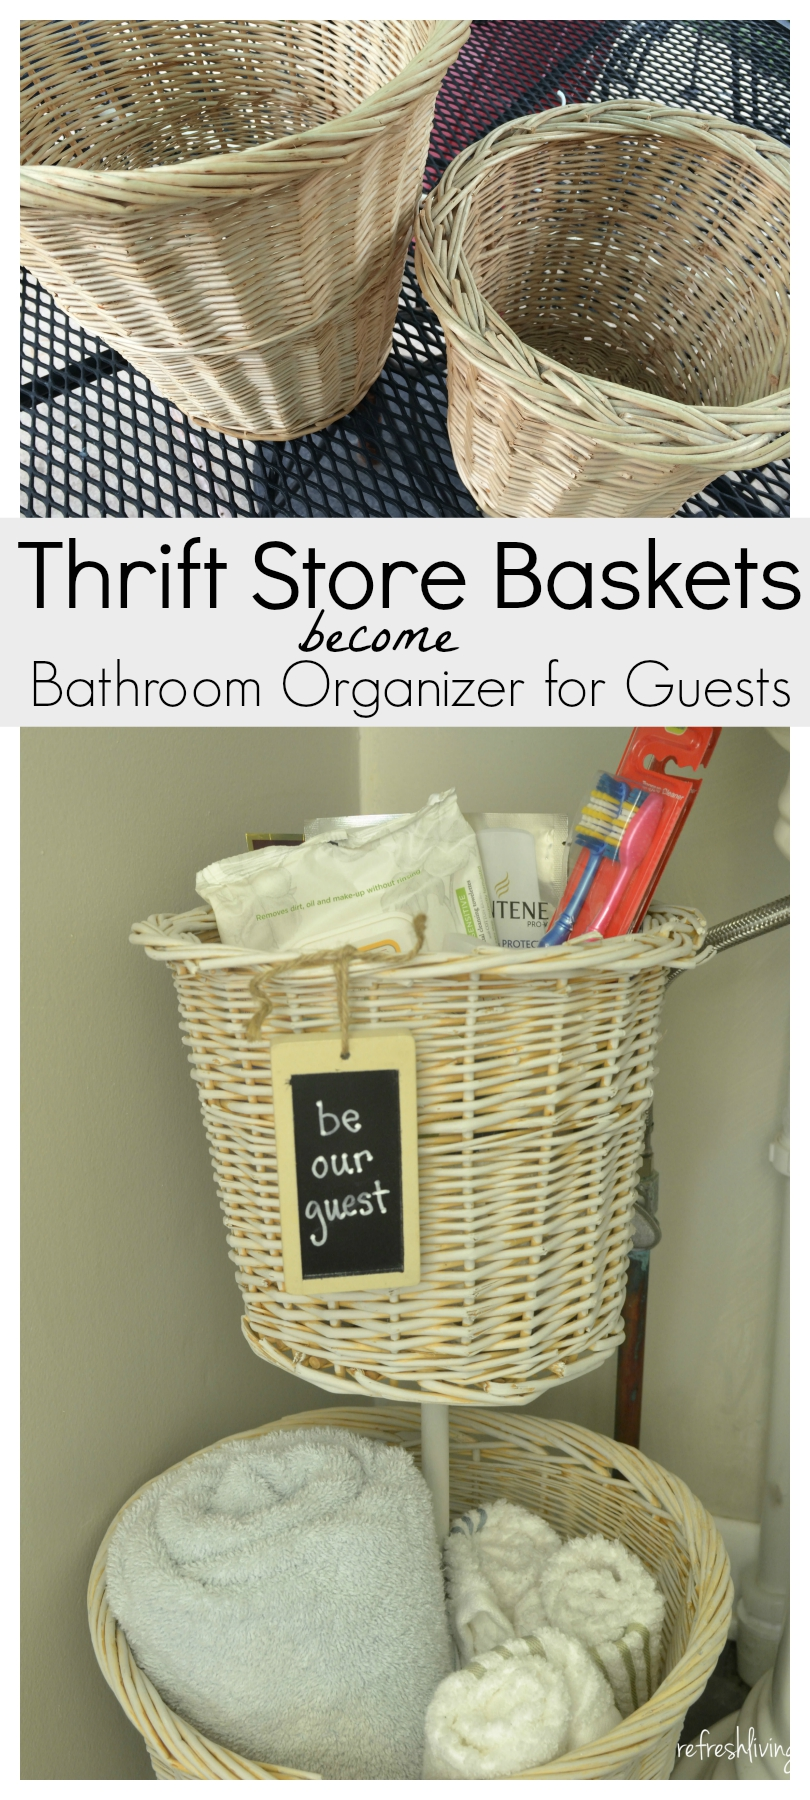 Thirft Store Baskets Become DIY Bathroom Organizer For Guests